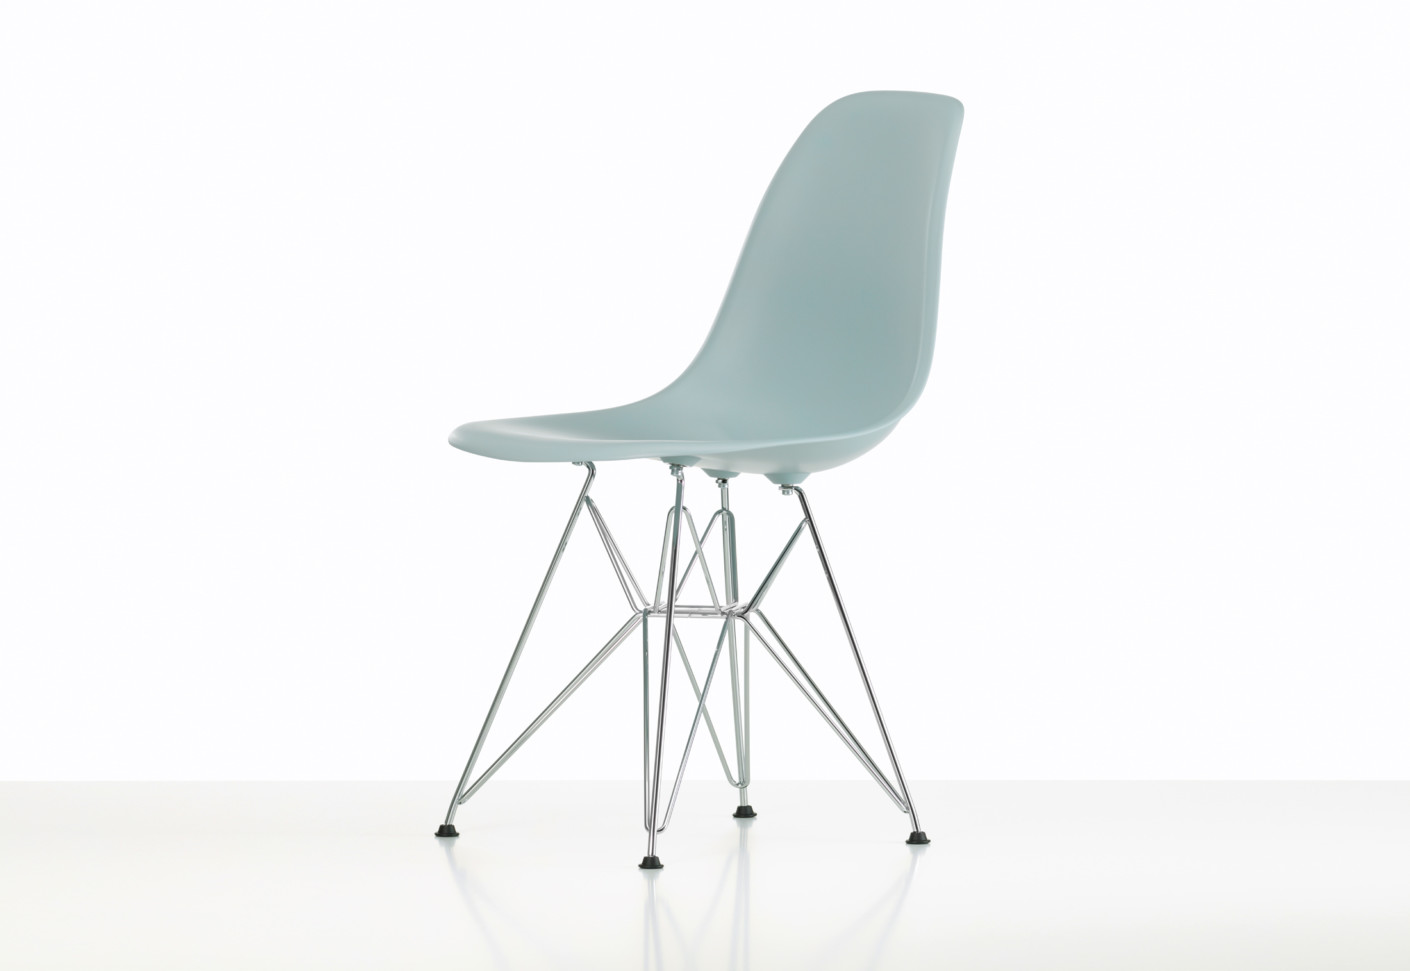 Vitra Eames Side Chair Eames Plastic Side Chair Dsr By Vitra Stylepark